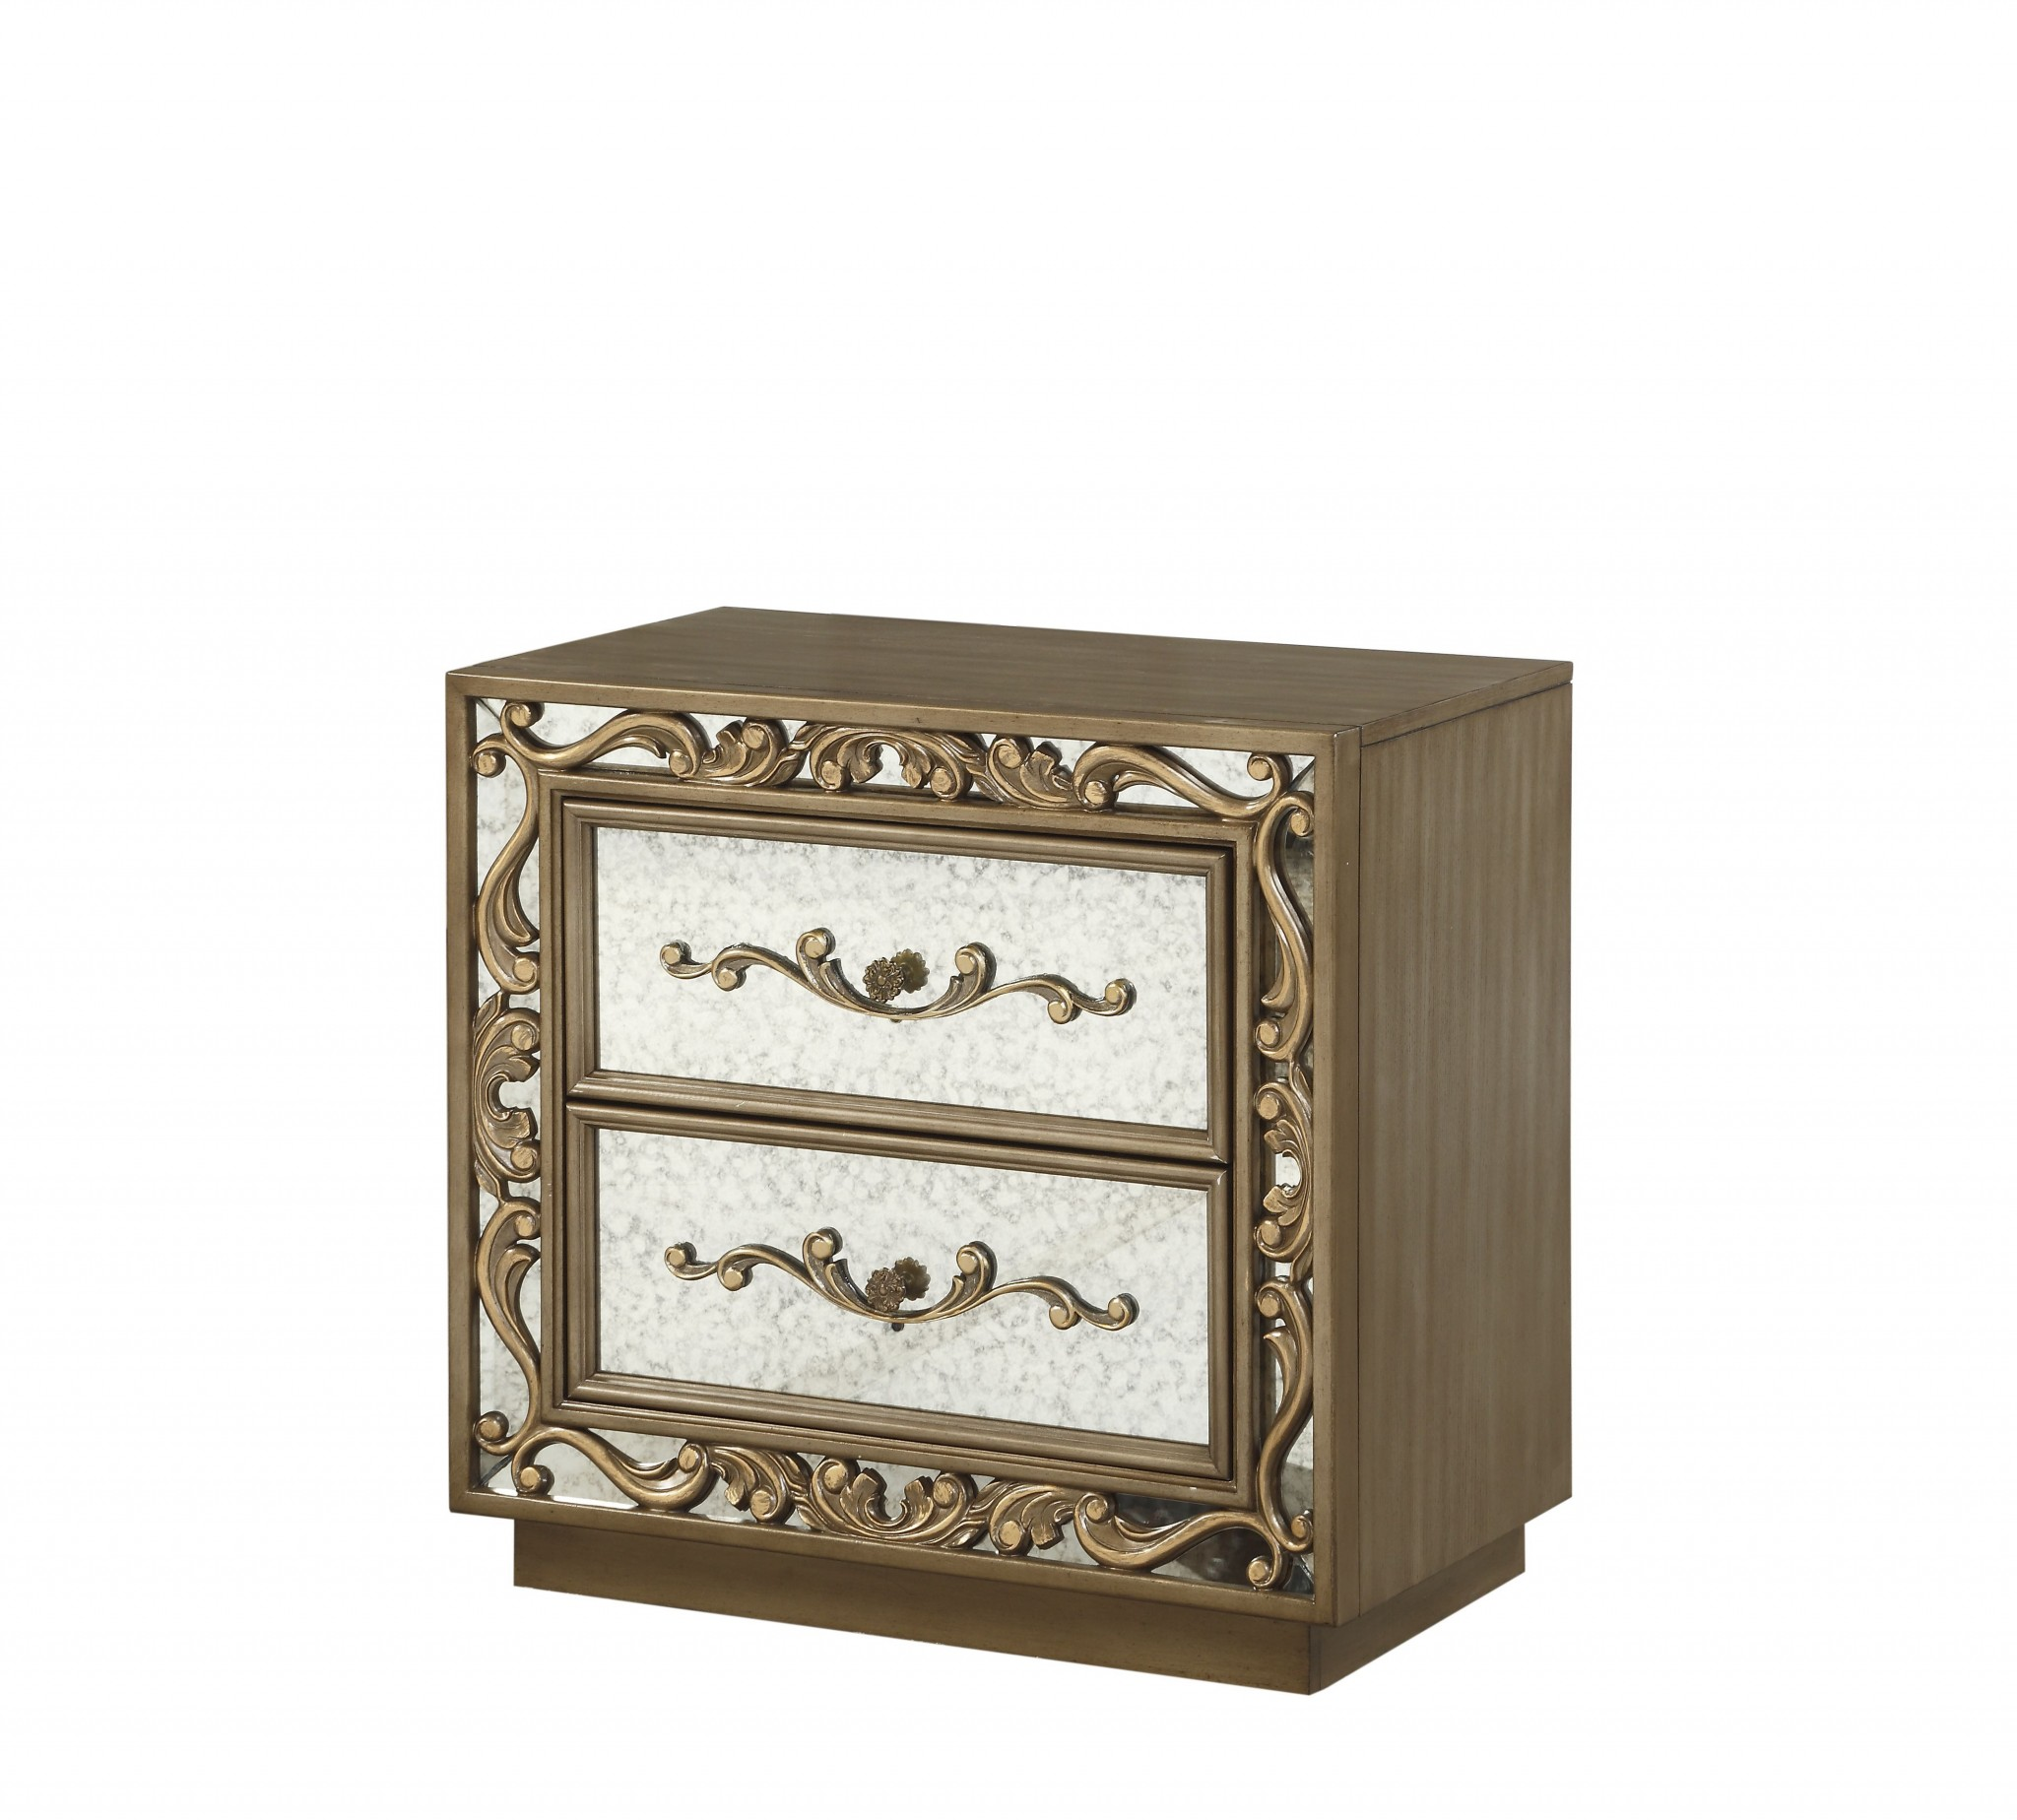 32 X 18 X 28 Antique Gold And Mirrored Poplar Nightstand